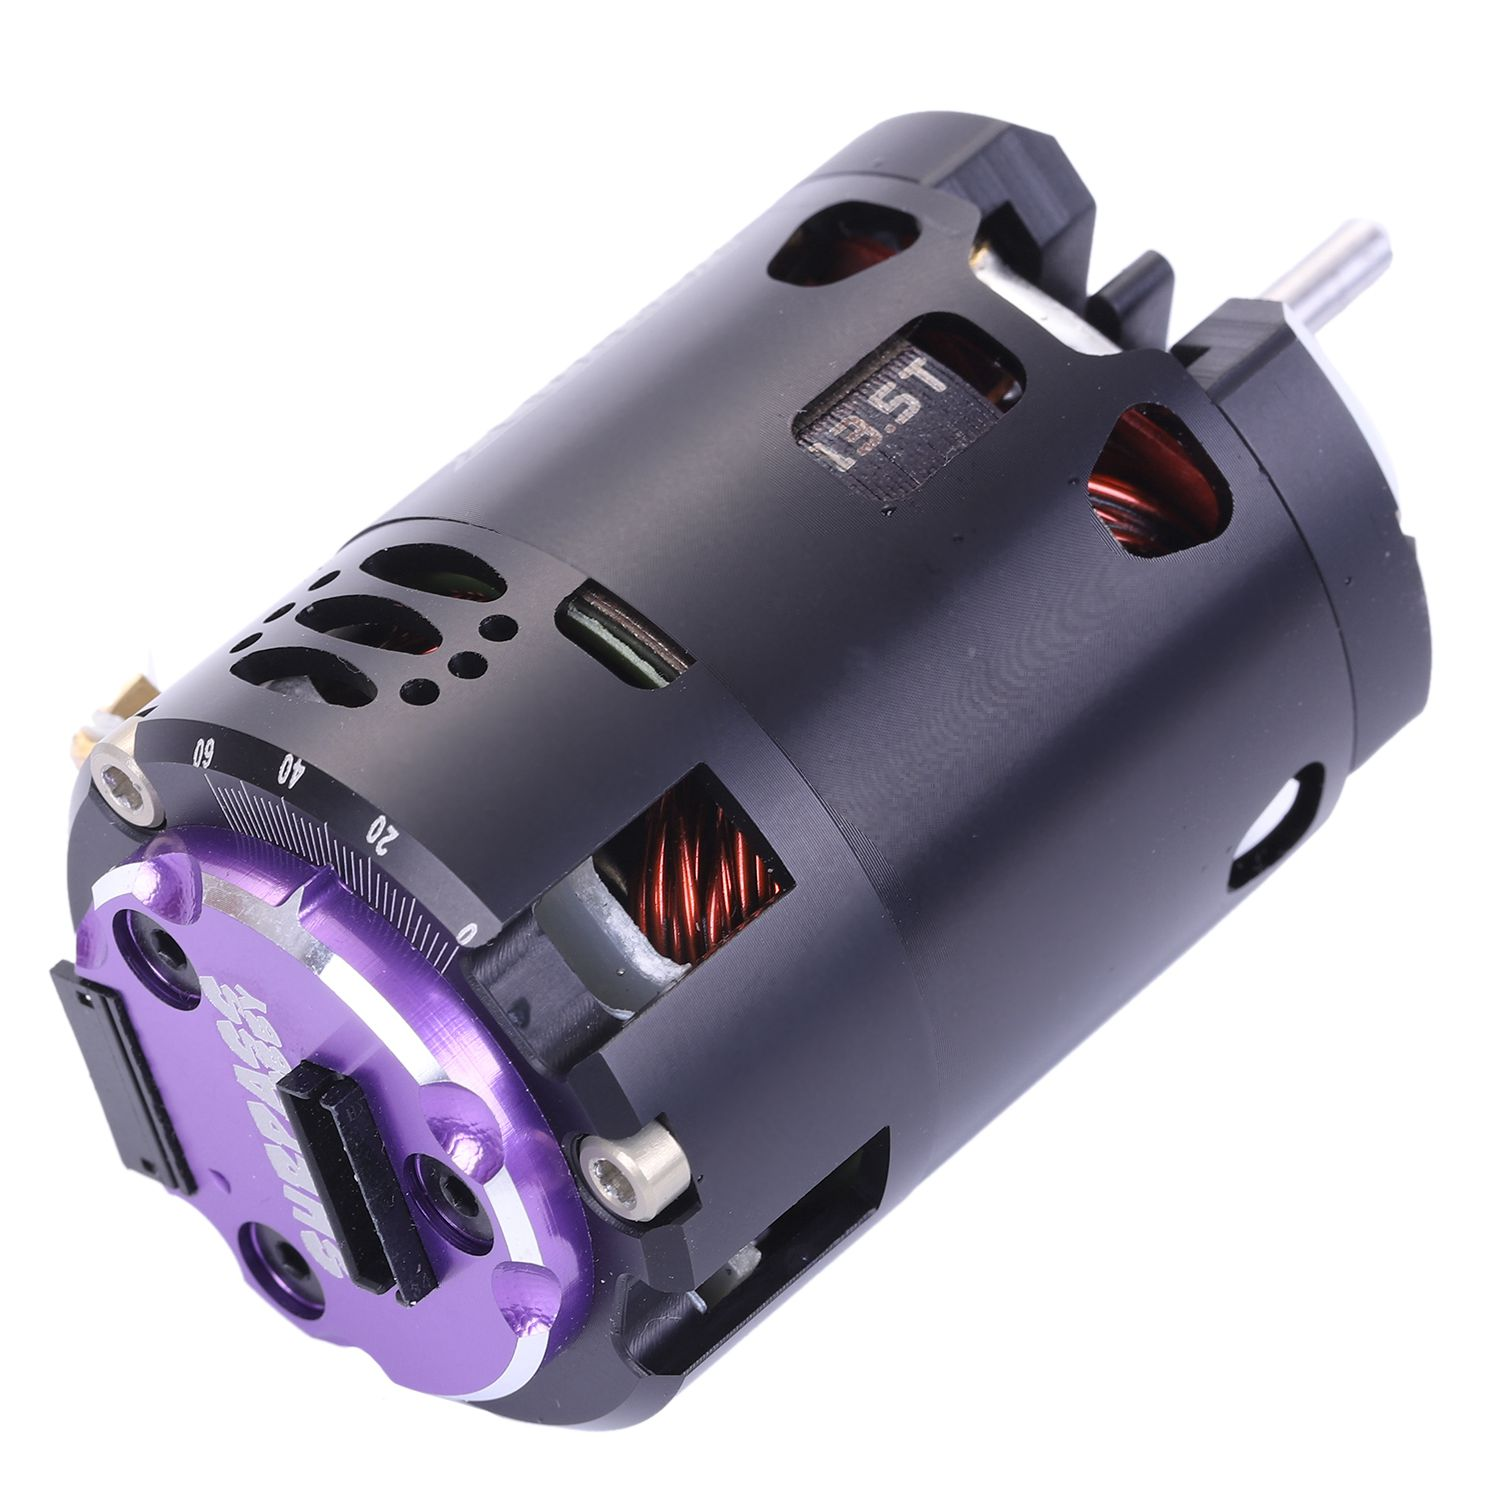 LCLL SURPASS HOBBY V3 540 13 5T Sensored SPEC RC Brushless Motor for 1 10 RC